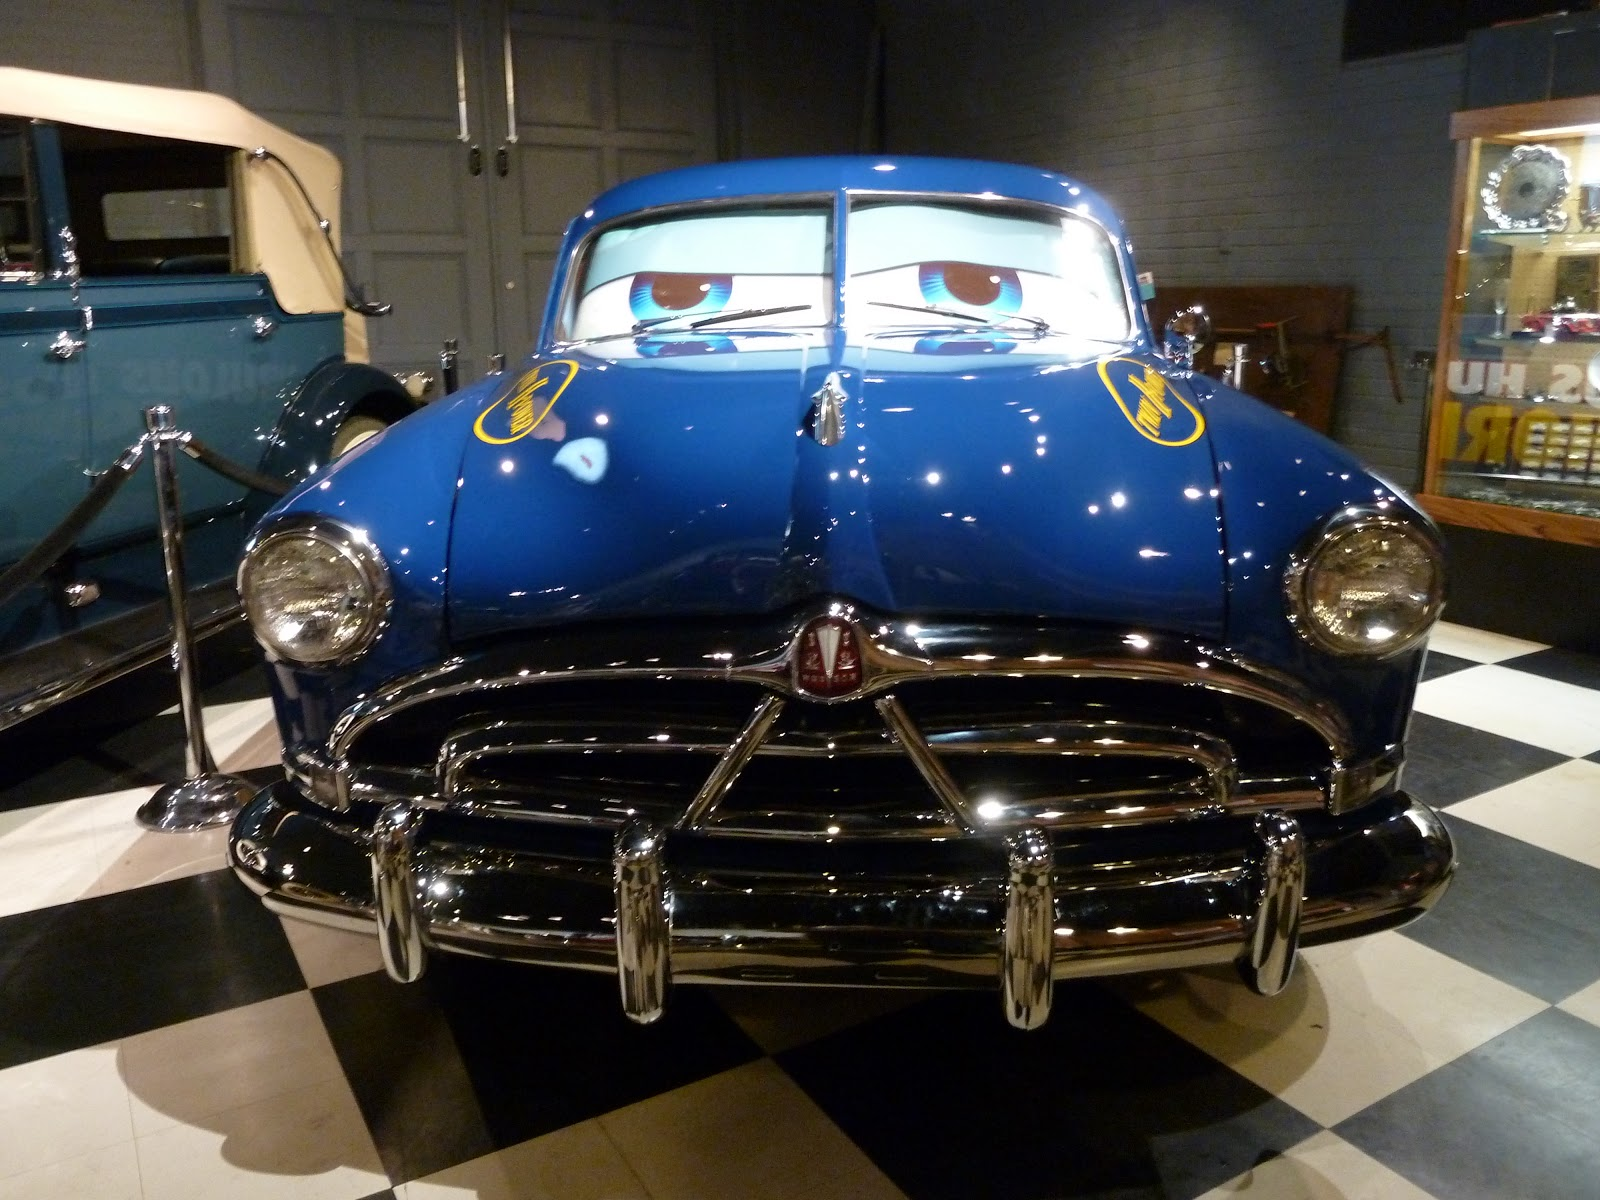 Doc From Cars Visits Union Station Museum - Pictures of really cool cars